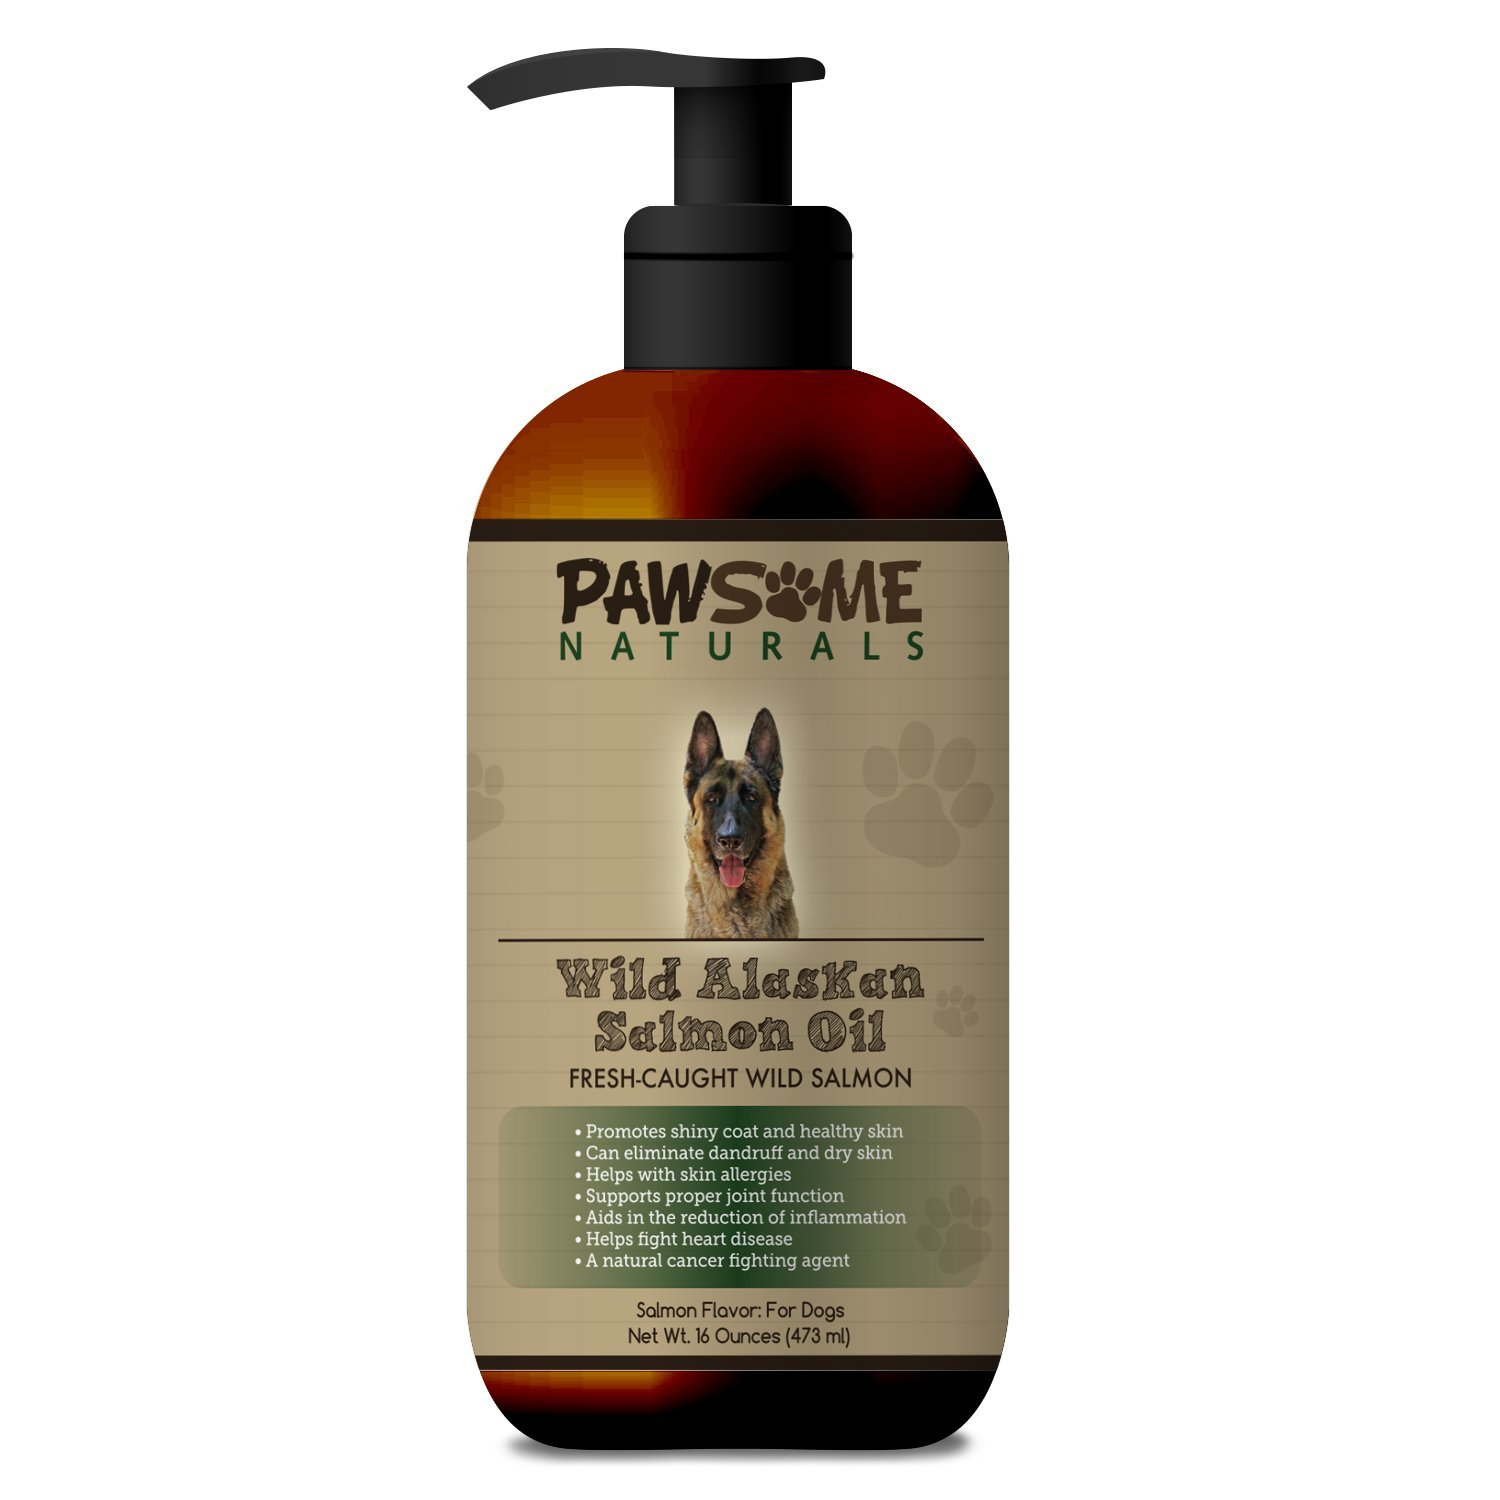 Pure Natural Wild Alaskan Salmon Oil For Dogs: Liquid Supplement Rich in Omega-3-6 Fatty Acids (EPA & DHA). Supports Healthy Skin, Coat, Heart and Joint Function and Boosts The Immune System - 16 OZ by FITMAKER